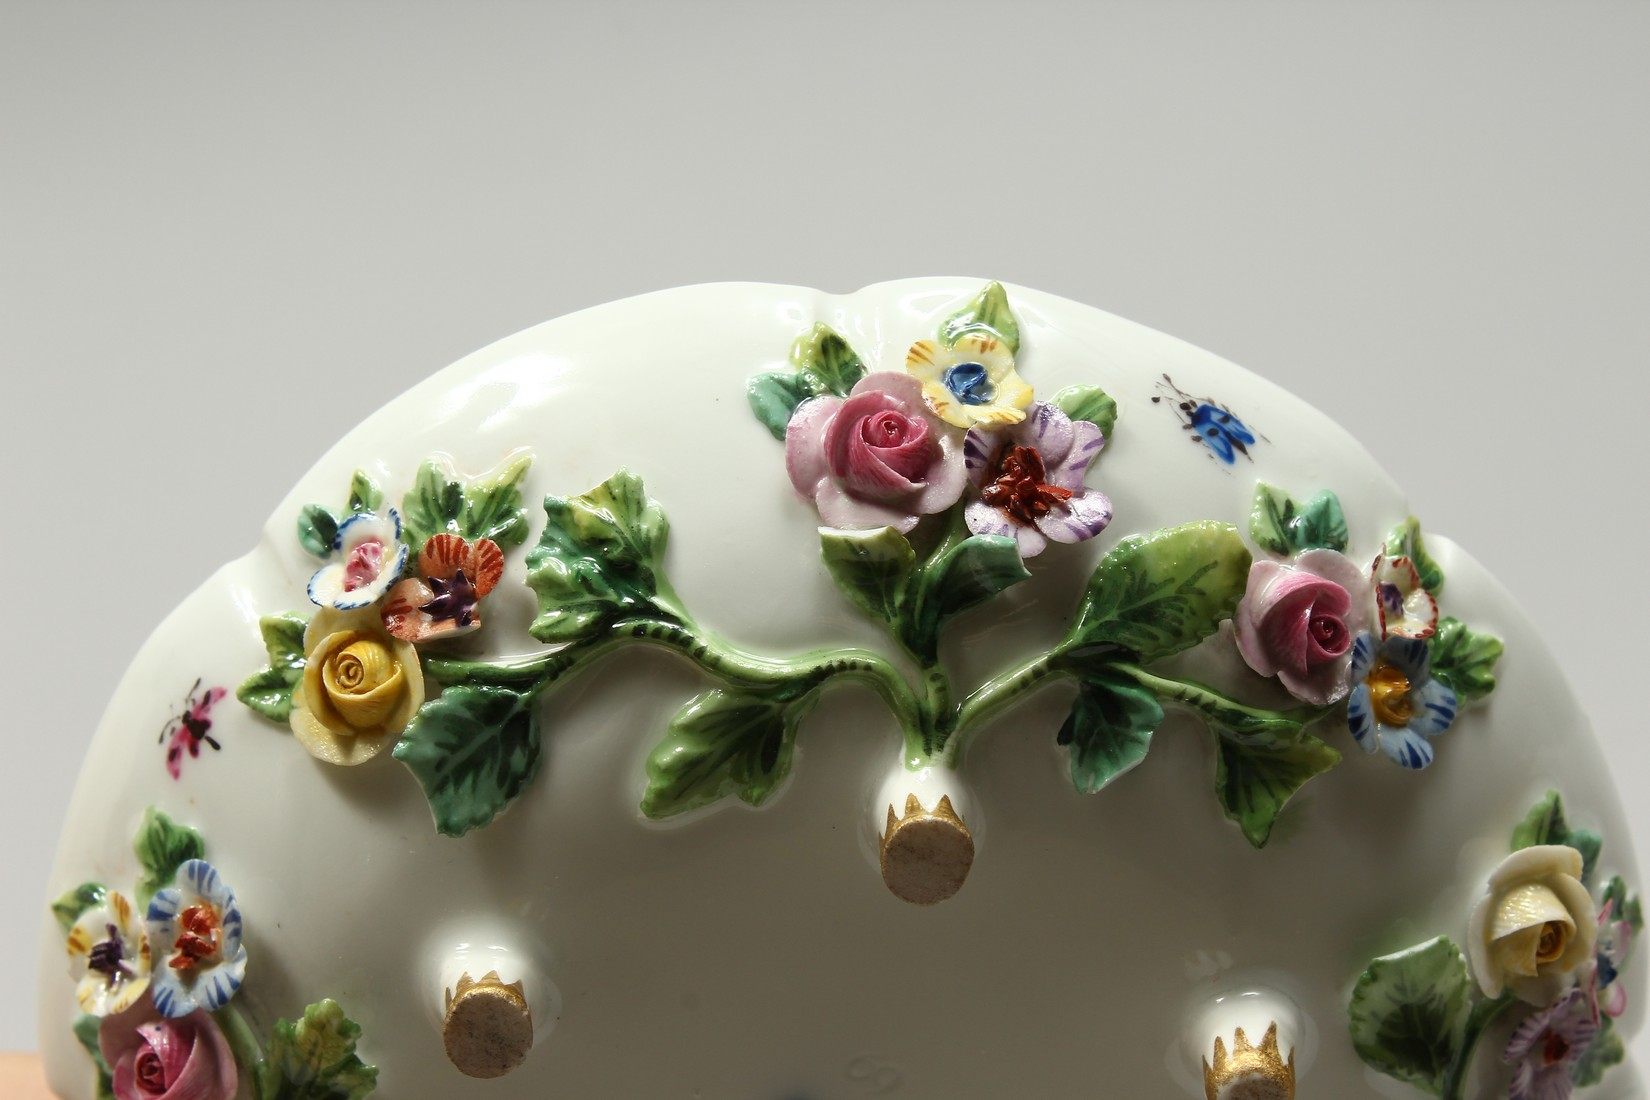 TWO MEISSEN PORCELAIN CUPS AND SAUCERS AND A SAUCER, encrusted with flowers and painted with - Image 14 of 16